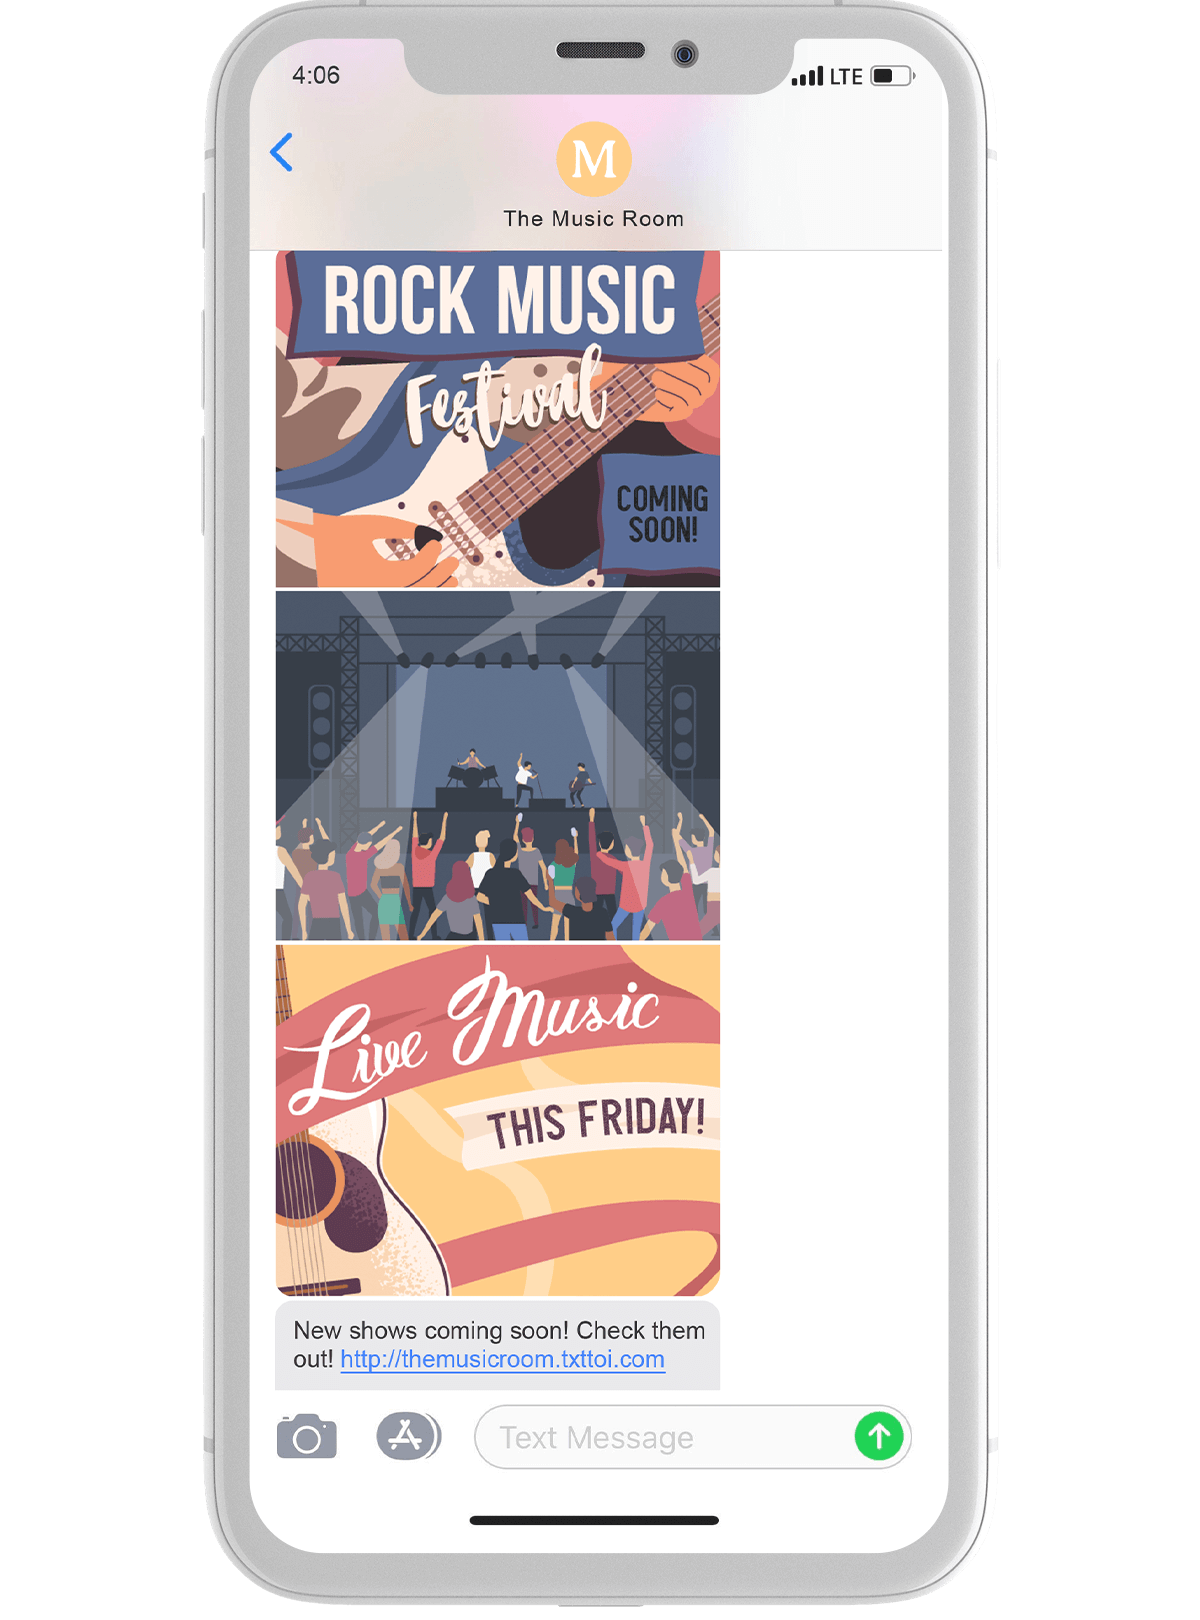 Music and Event Center Text Thread